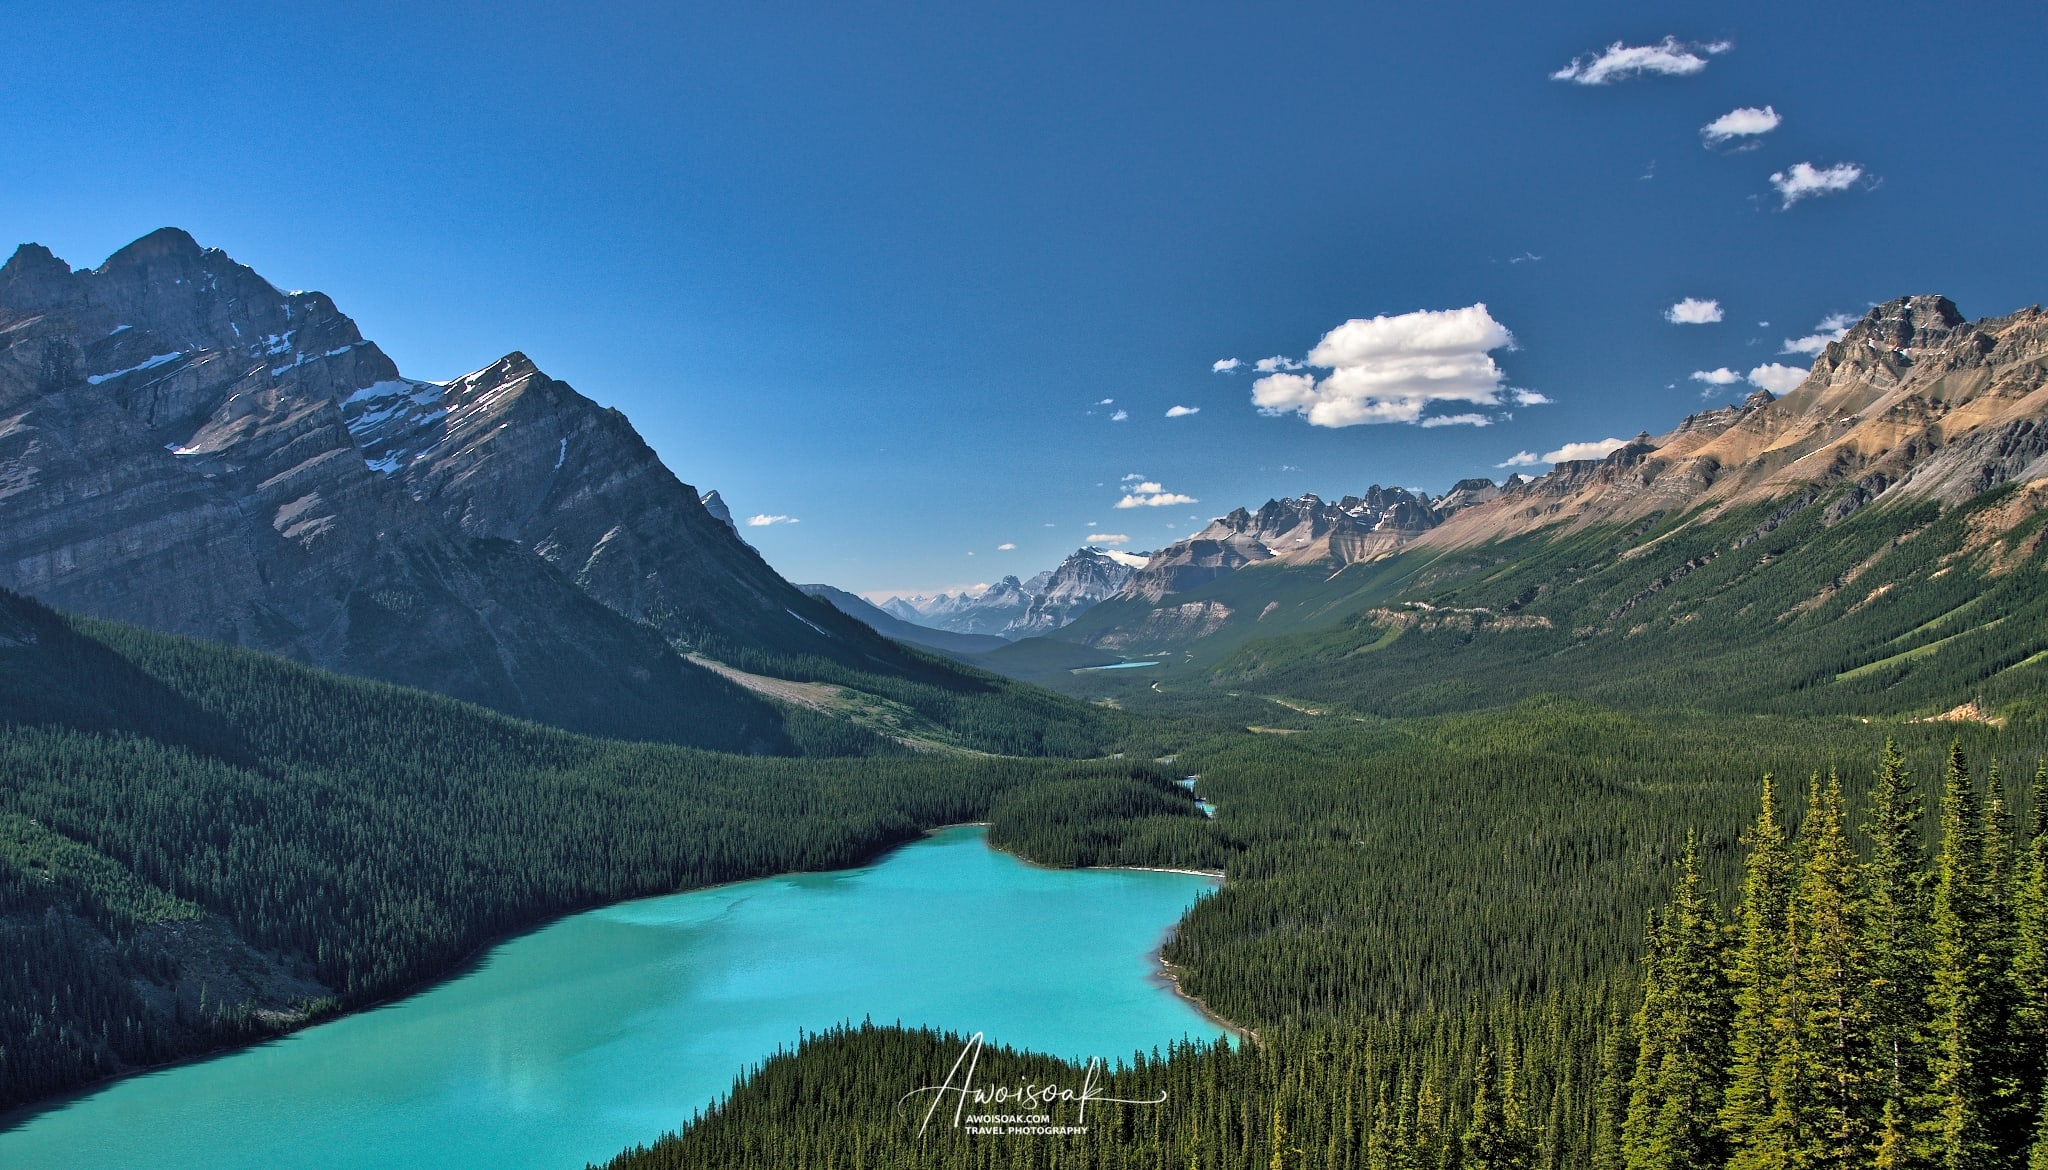 Canadian Rockies  AwOiSoAk  Road trip guide to the Canadian Rockies